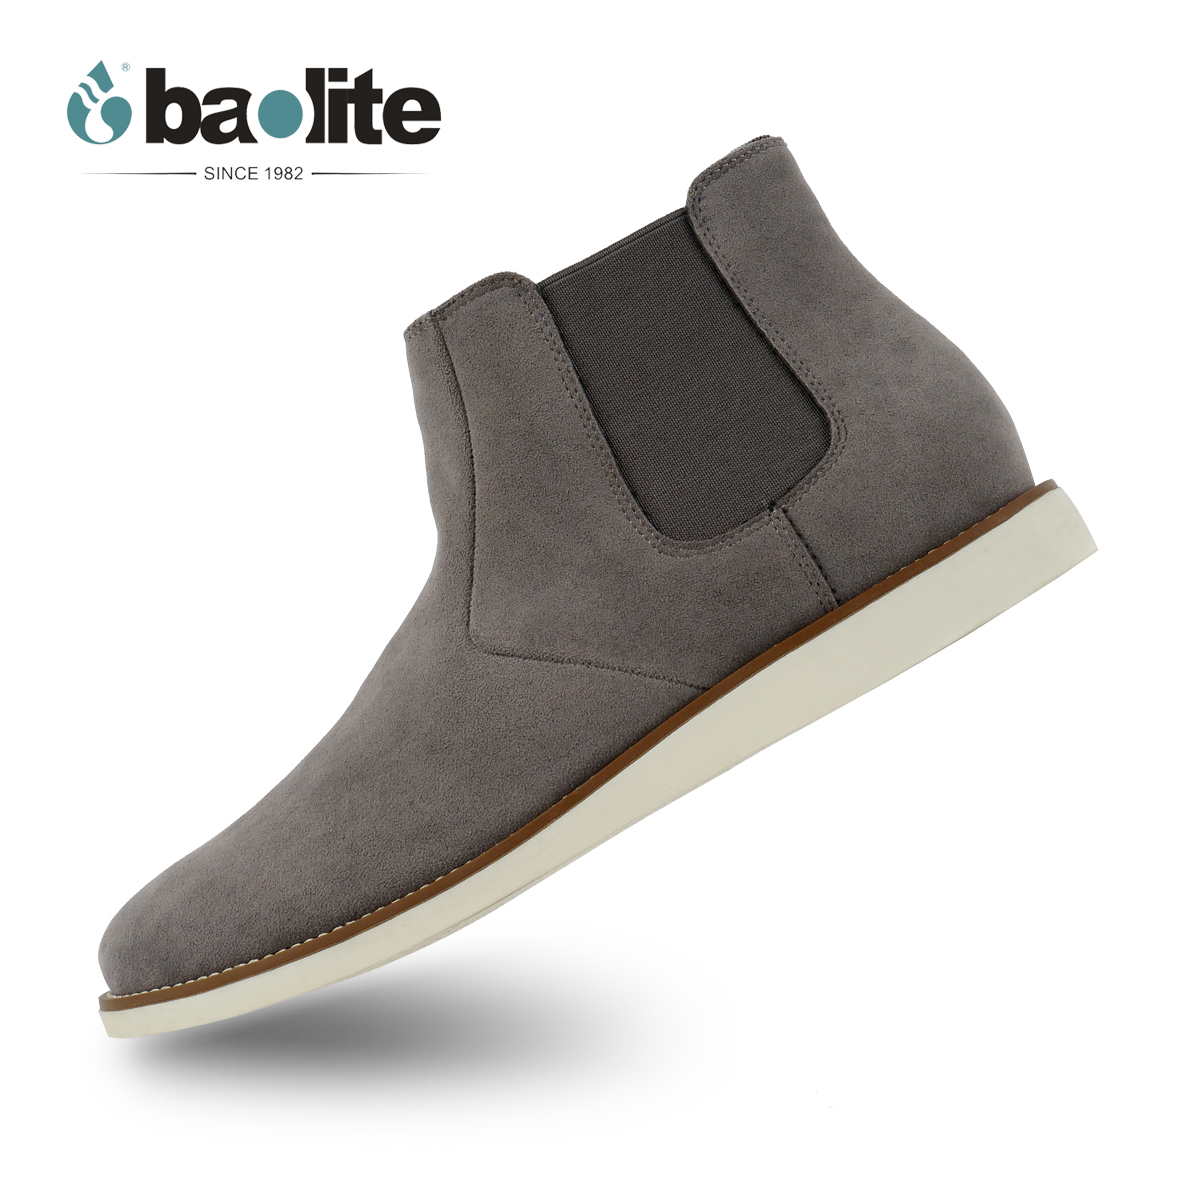 Baolite Chinese factory men's shoes ankle <strong>boots</strong> high quality <strong>boots</strong> for men